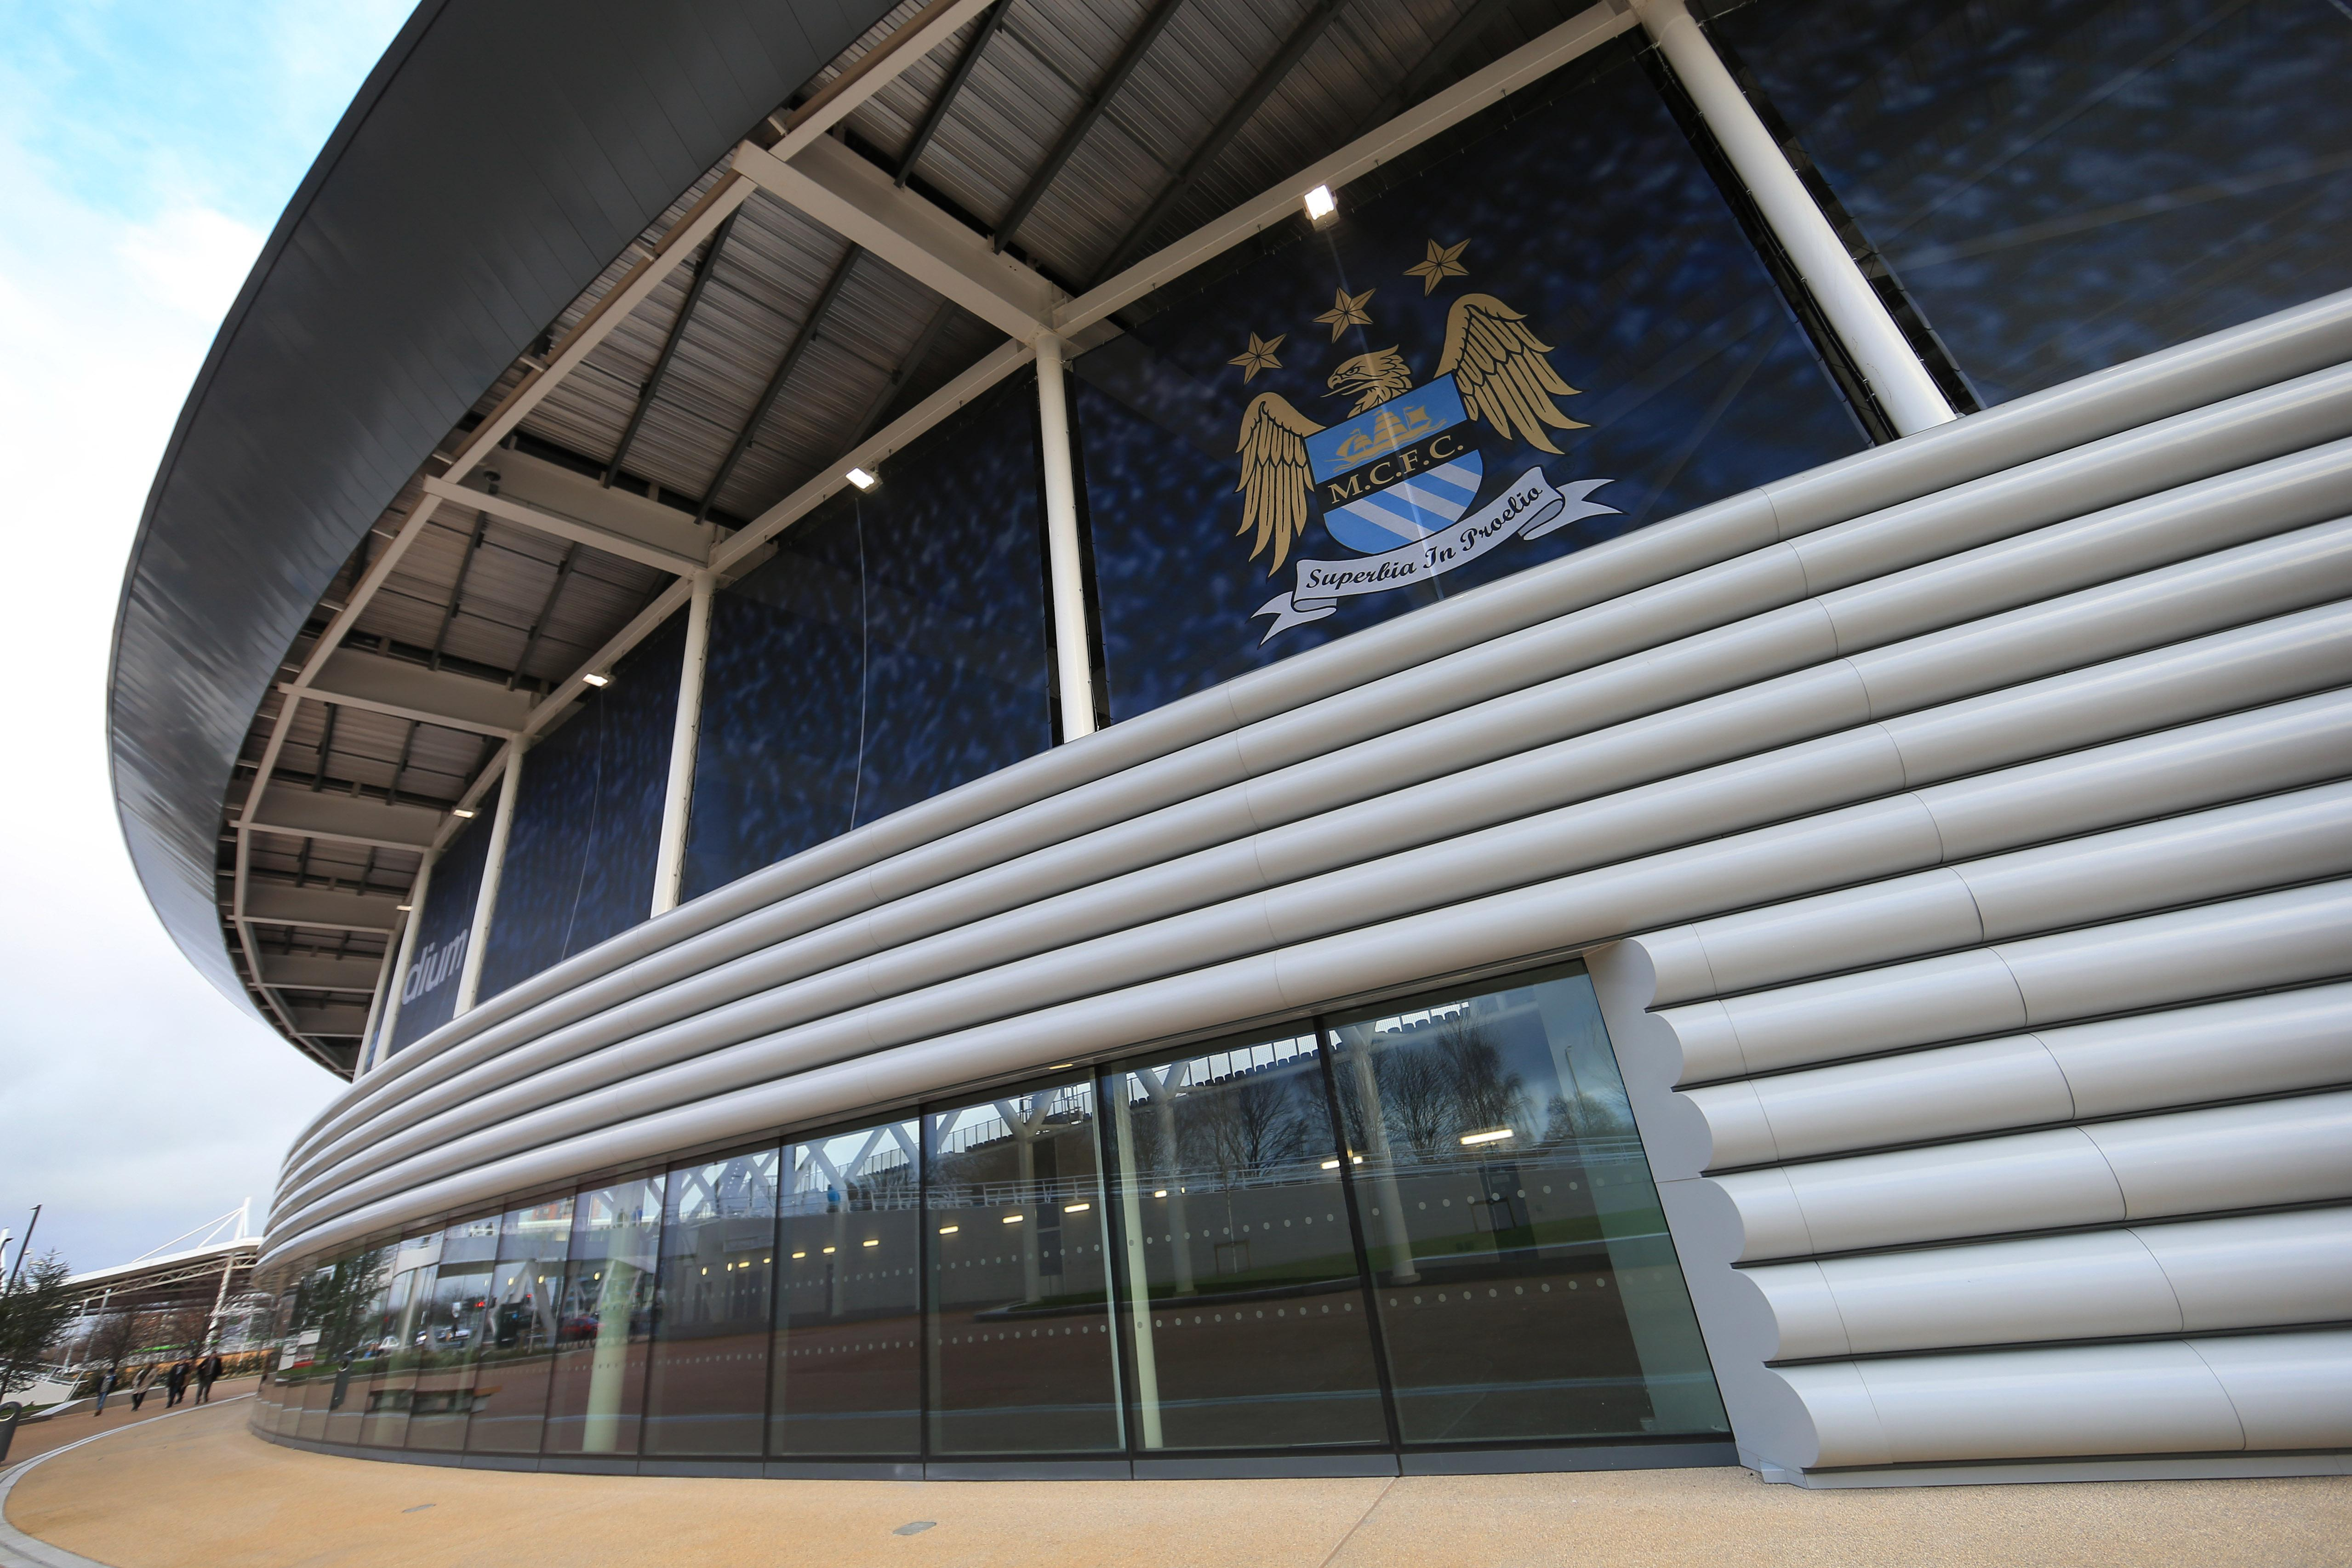 Manchester City believe they have dealt with the incident thoroughly and correctly